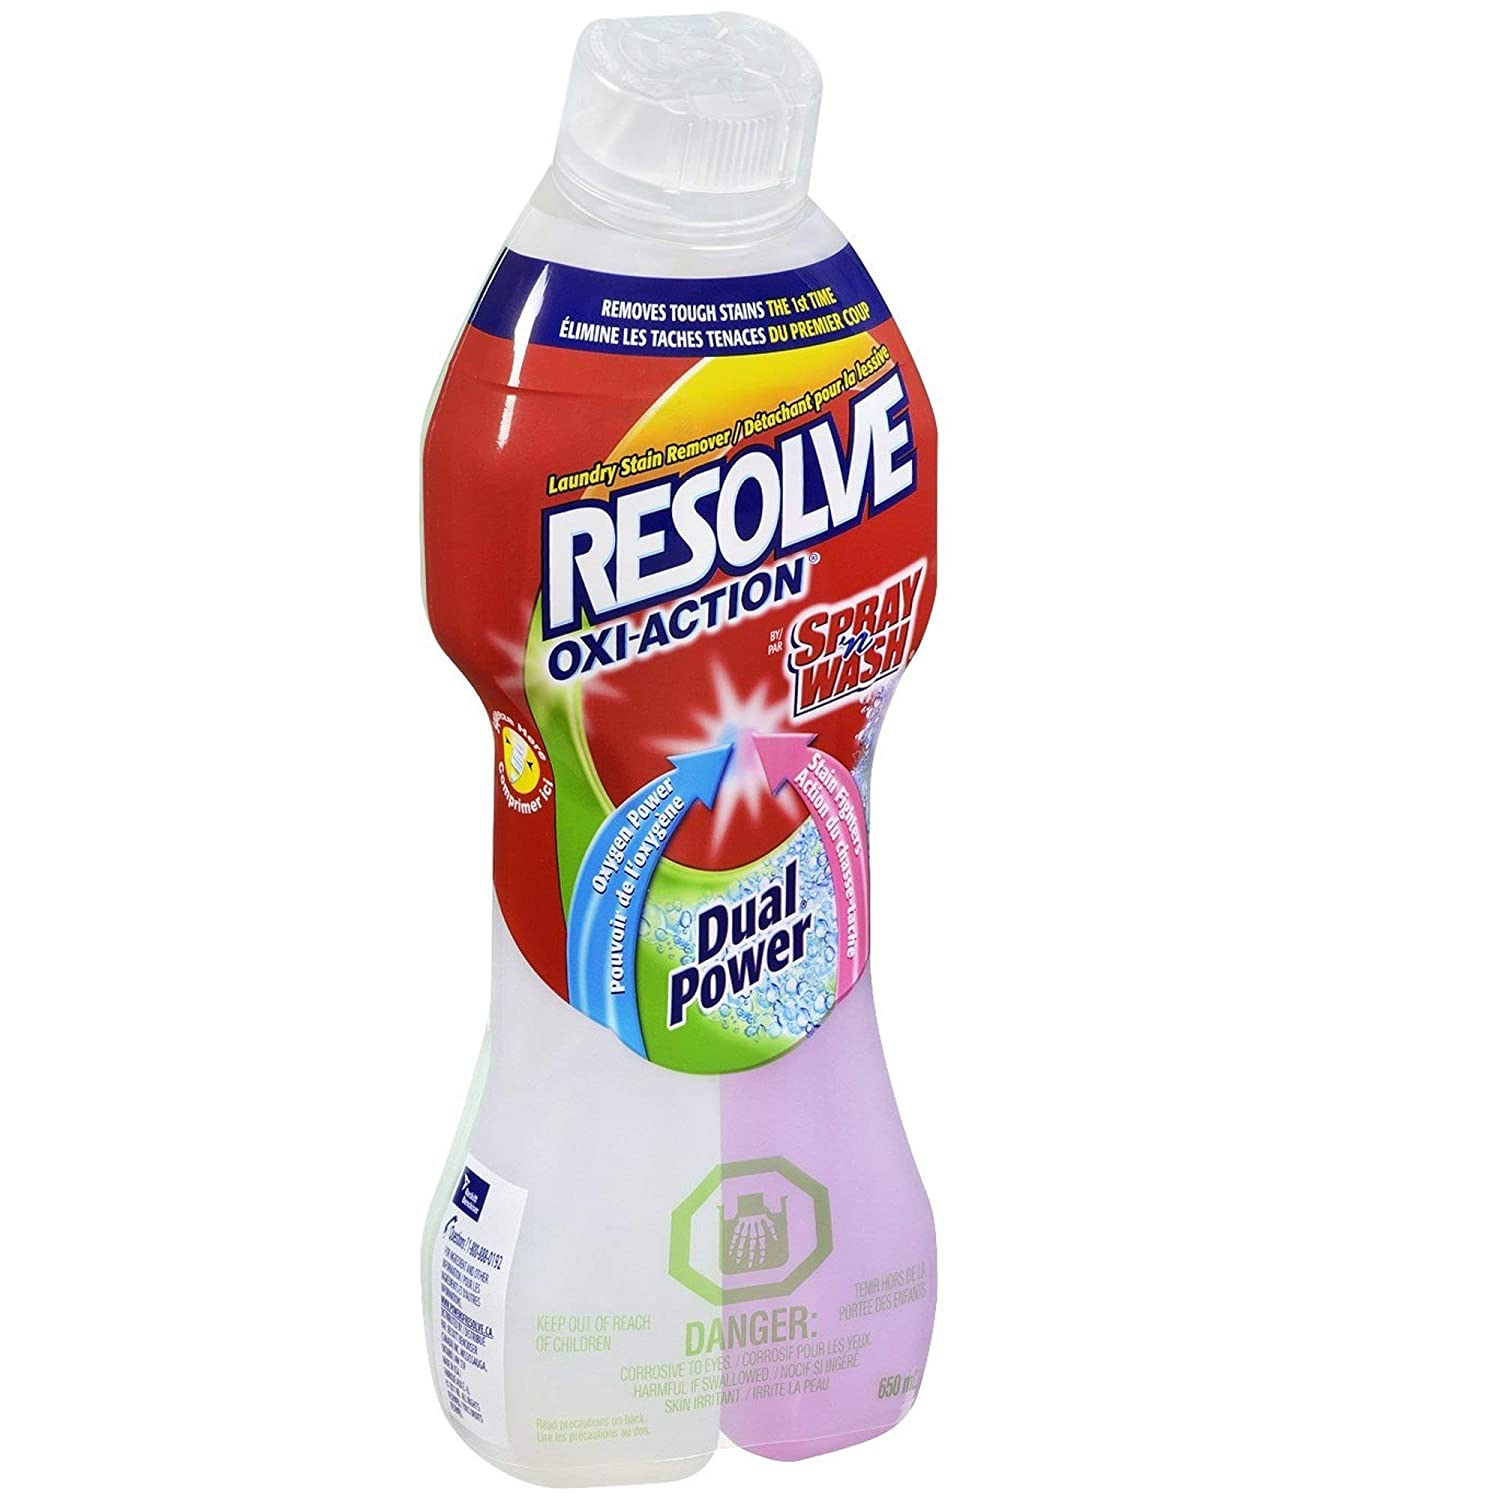 Resolve Oxi-Action Dual Power Pre Treatment Stain Remover 22 OZ